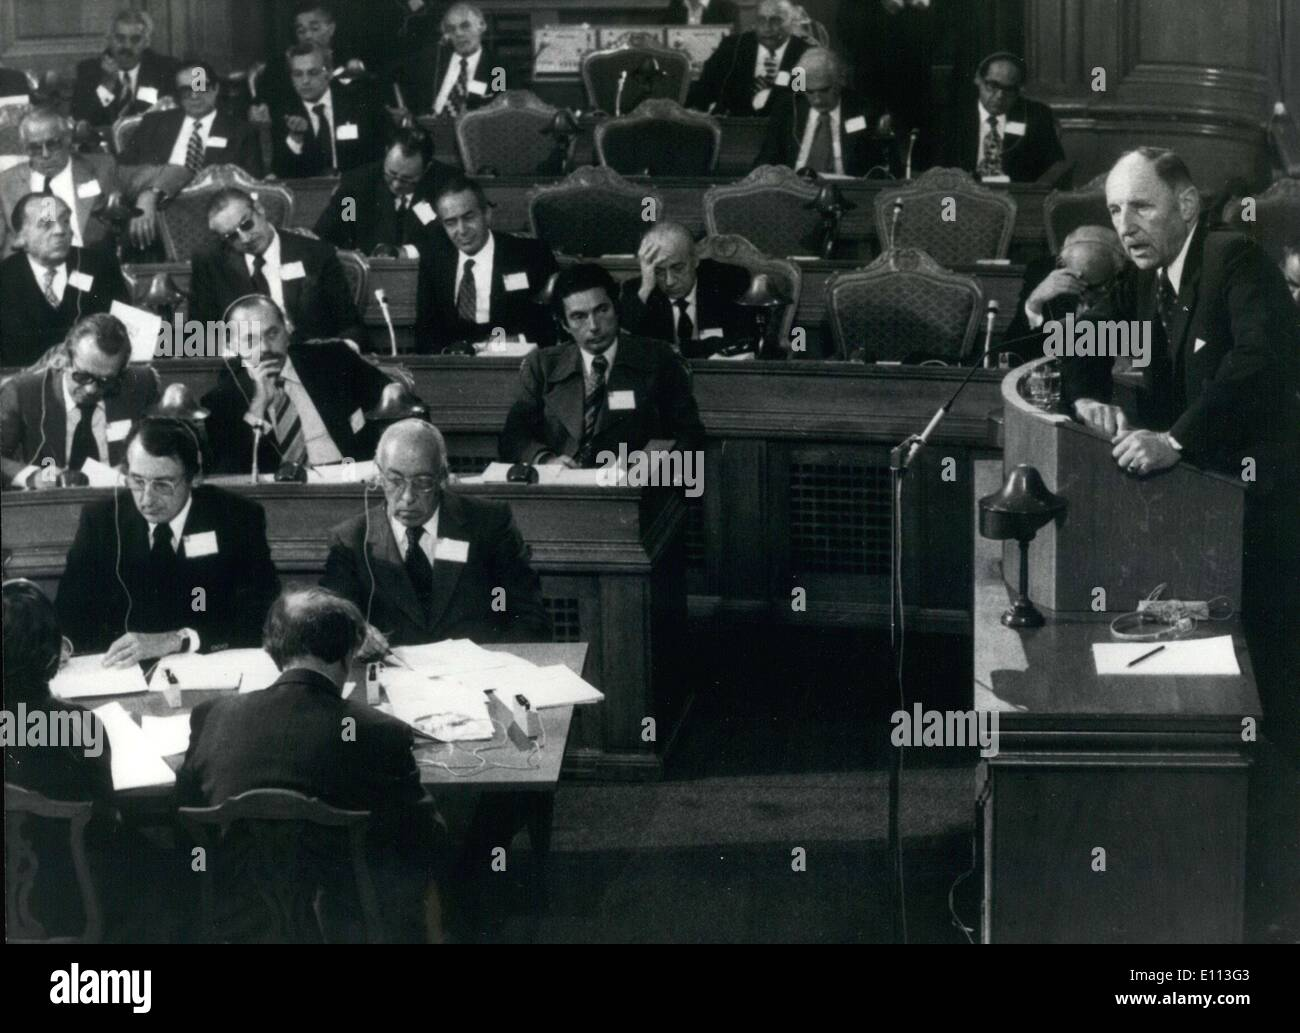 Sep. 28, 1975 - NATO held its 21st annual session in Denmark. - Stock Image